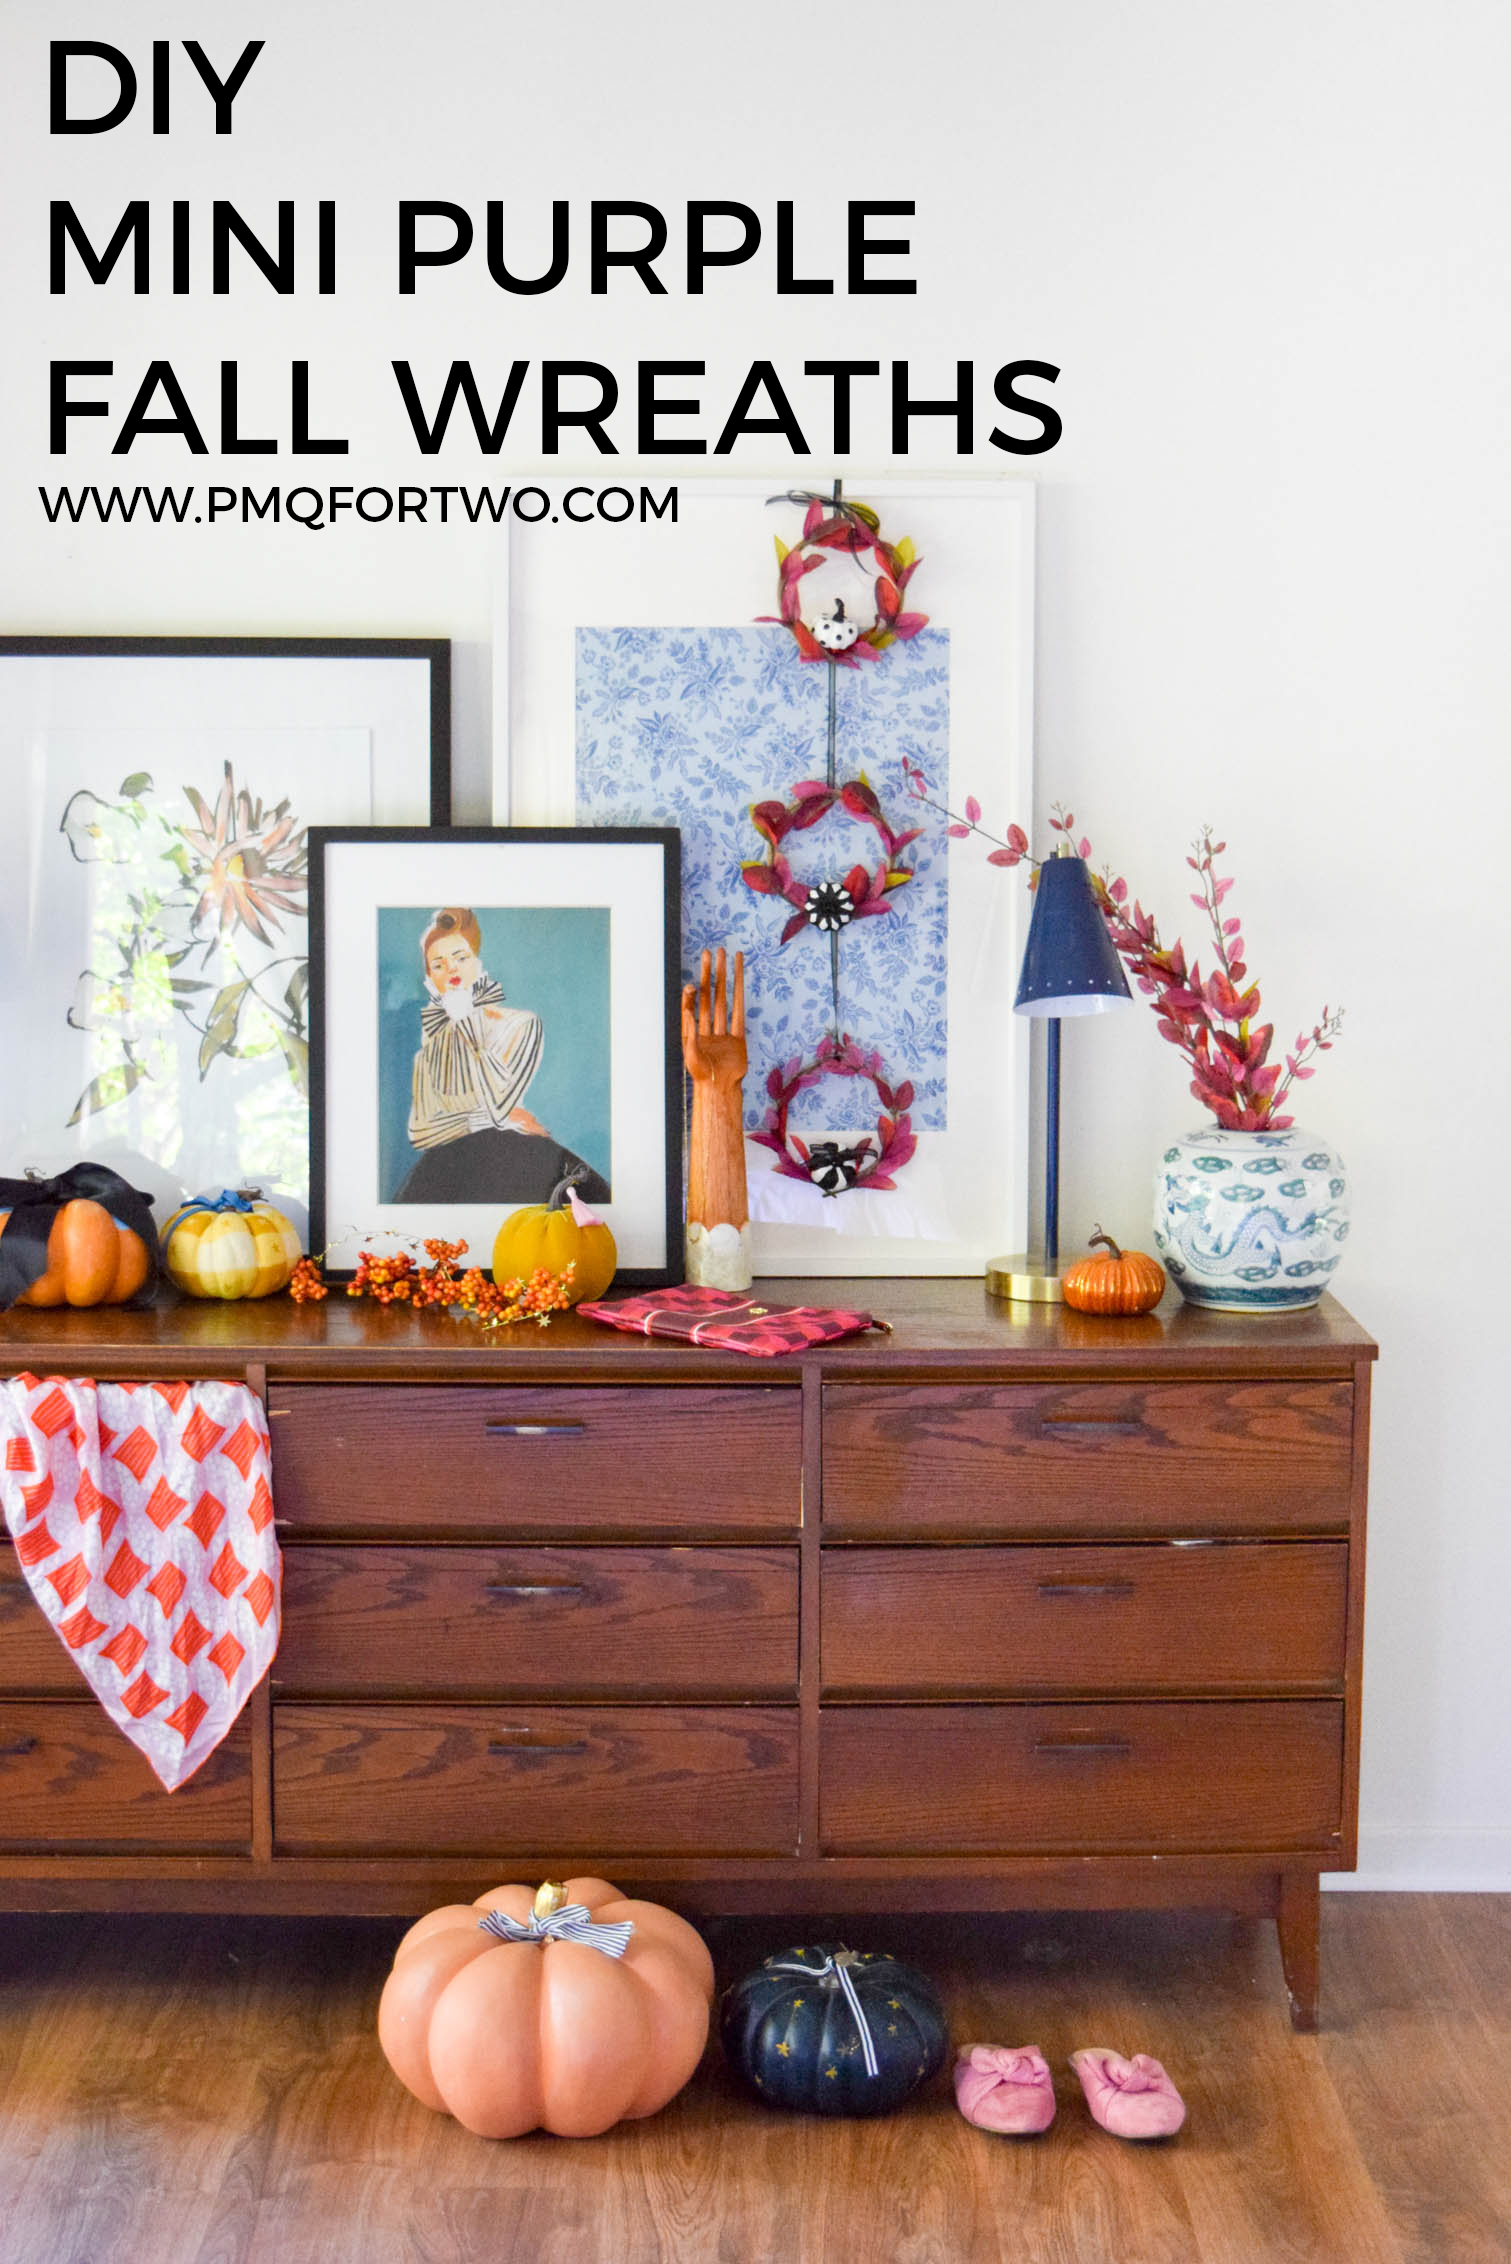 mcm dresser decorated for fall with wreaths and pumpkins